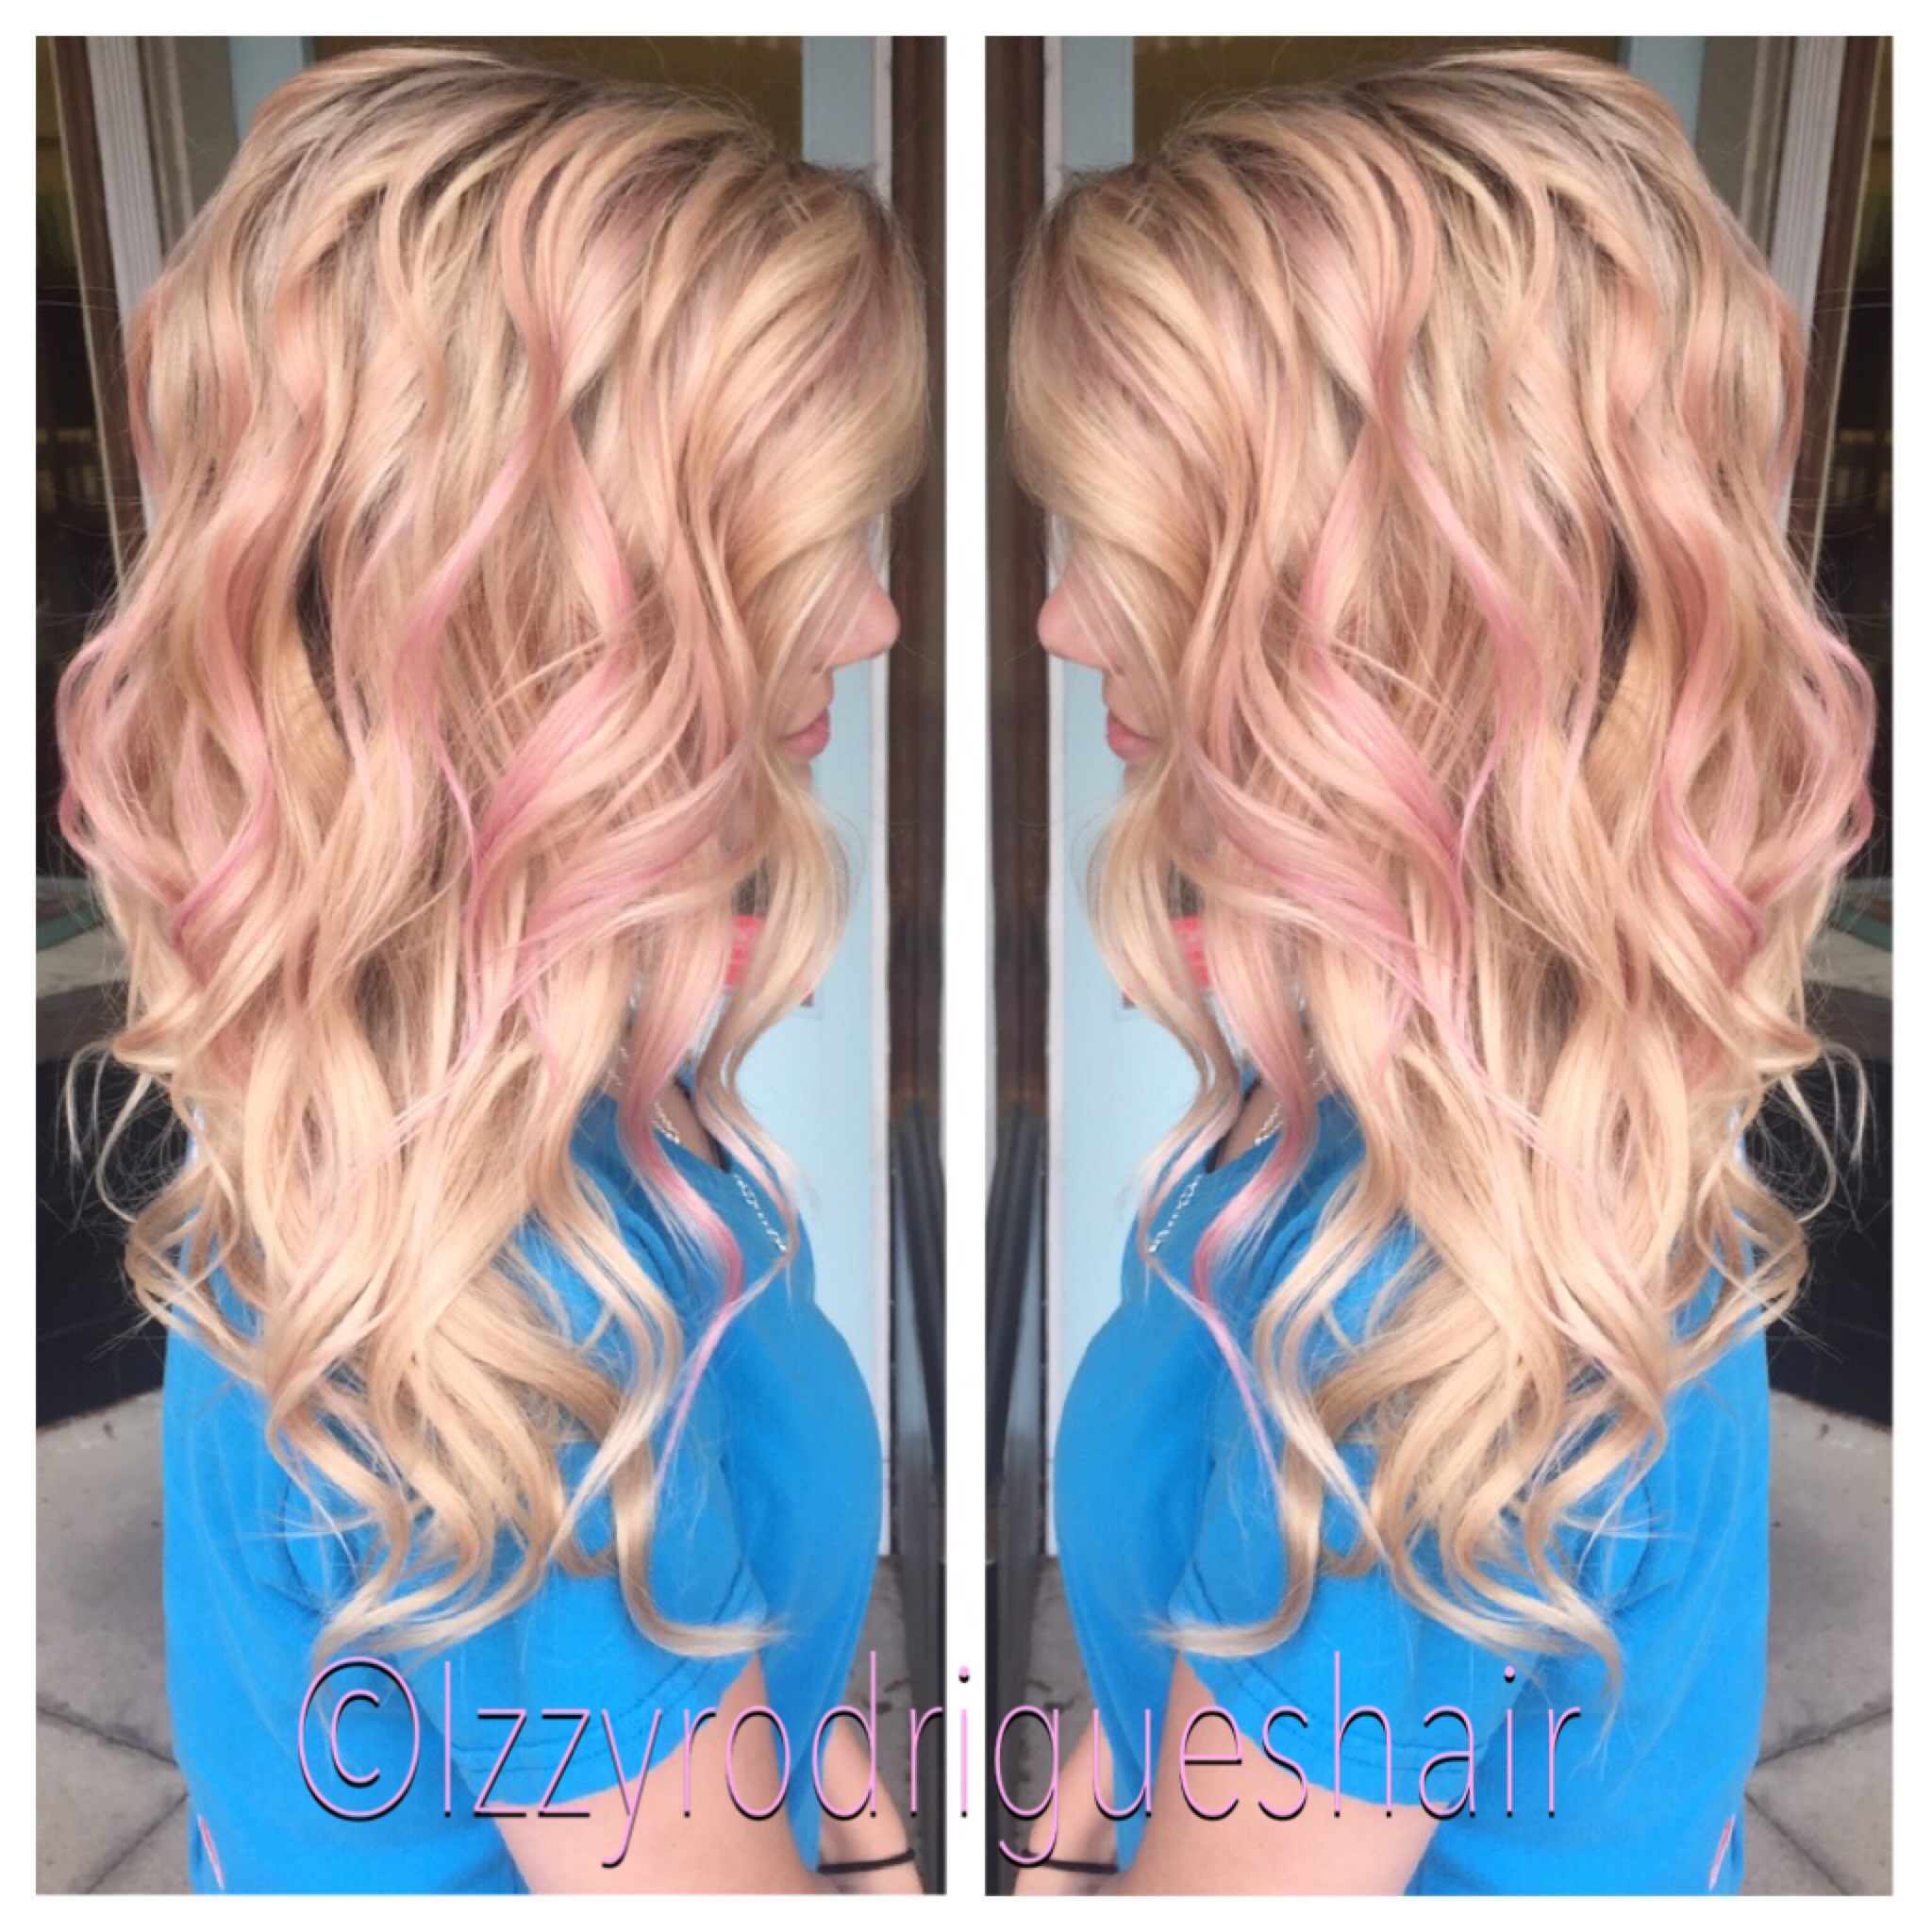 Blonde Hair With Subtle Pink Highlights Aveda Hair Ideas